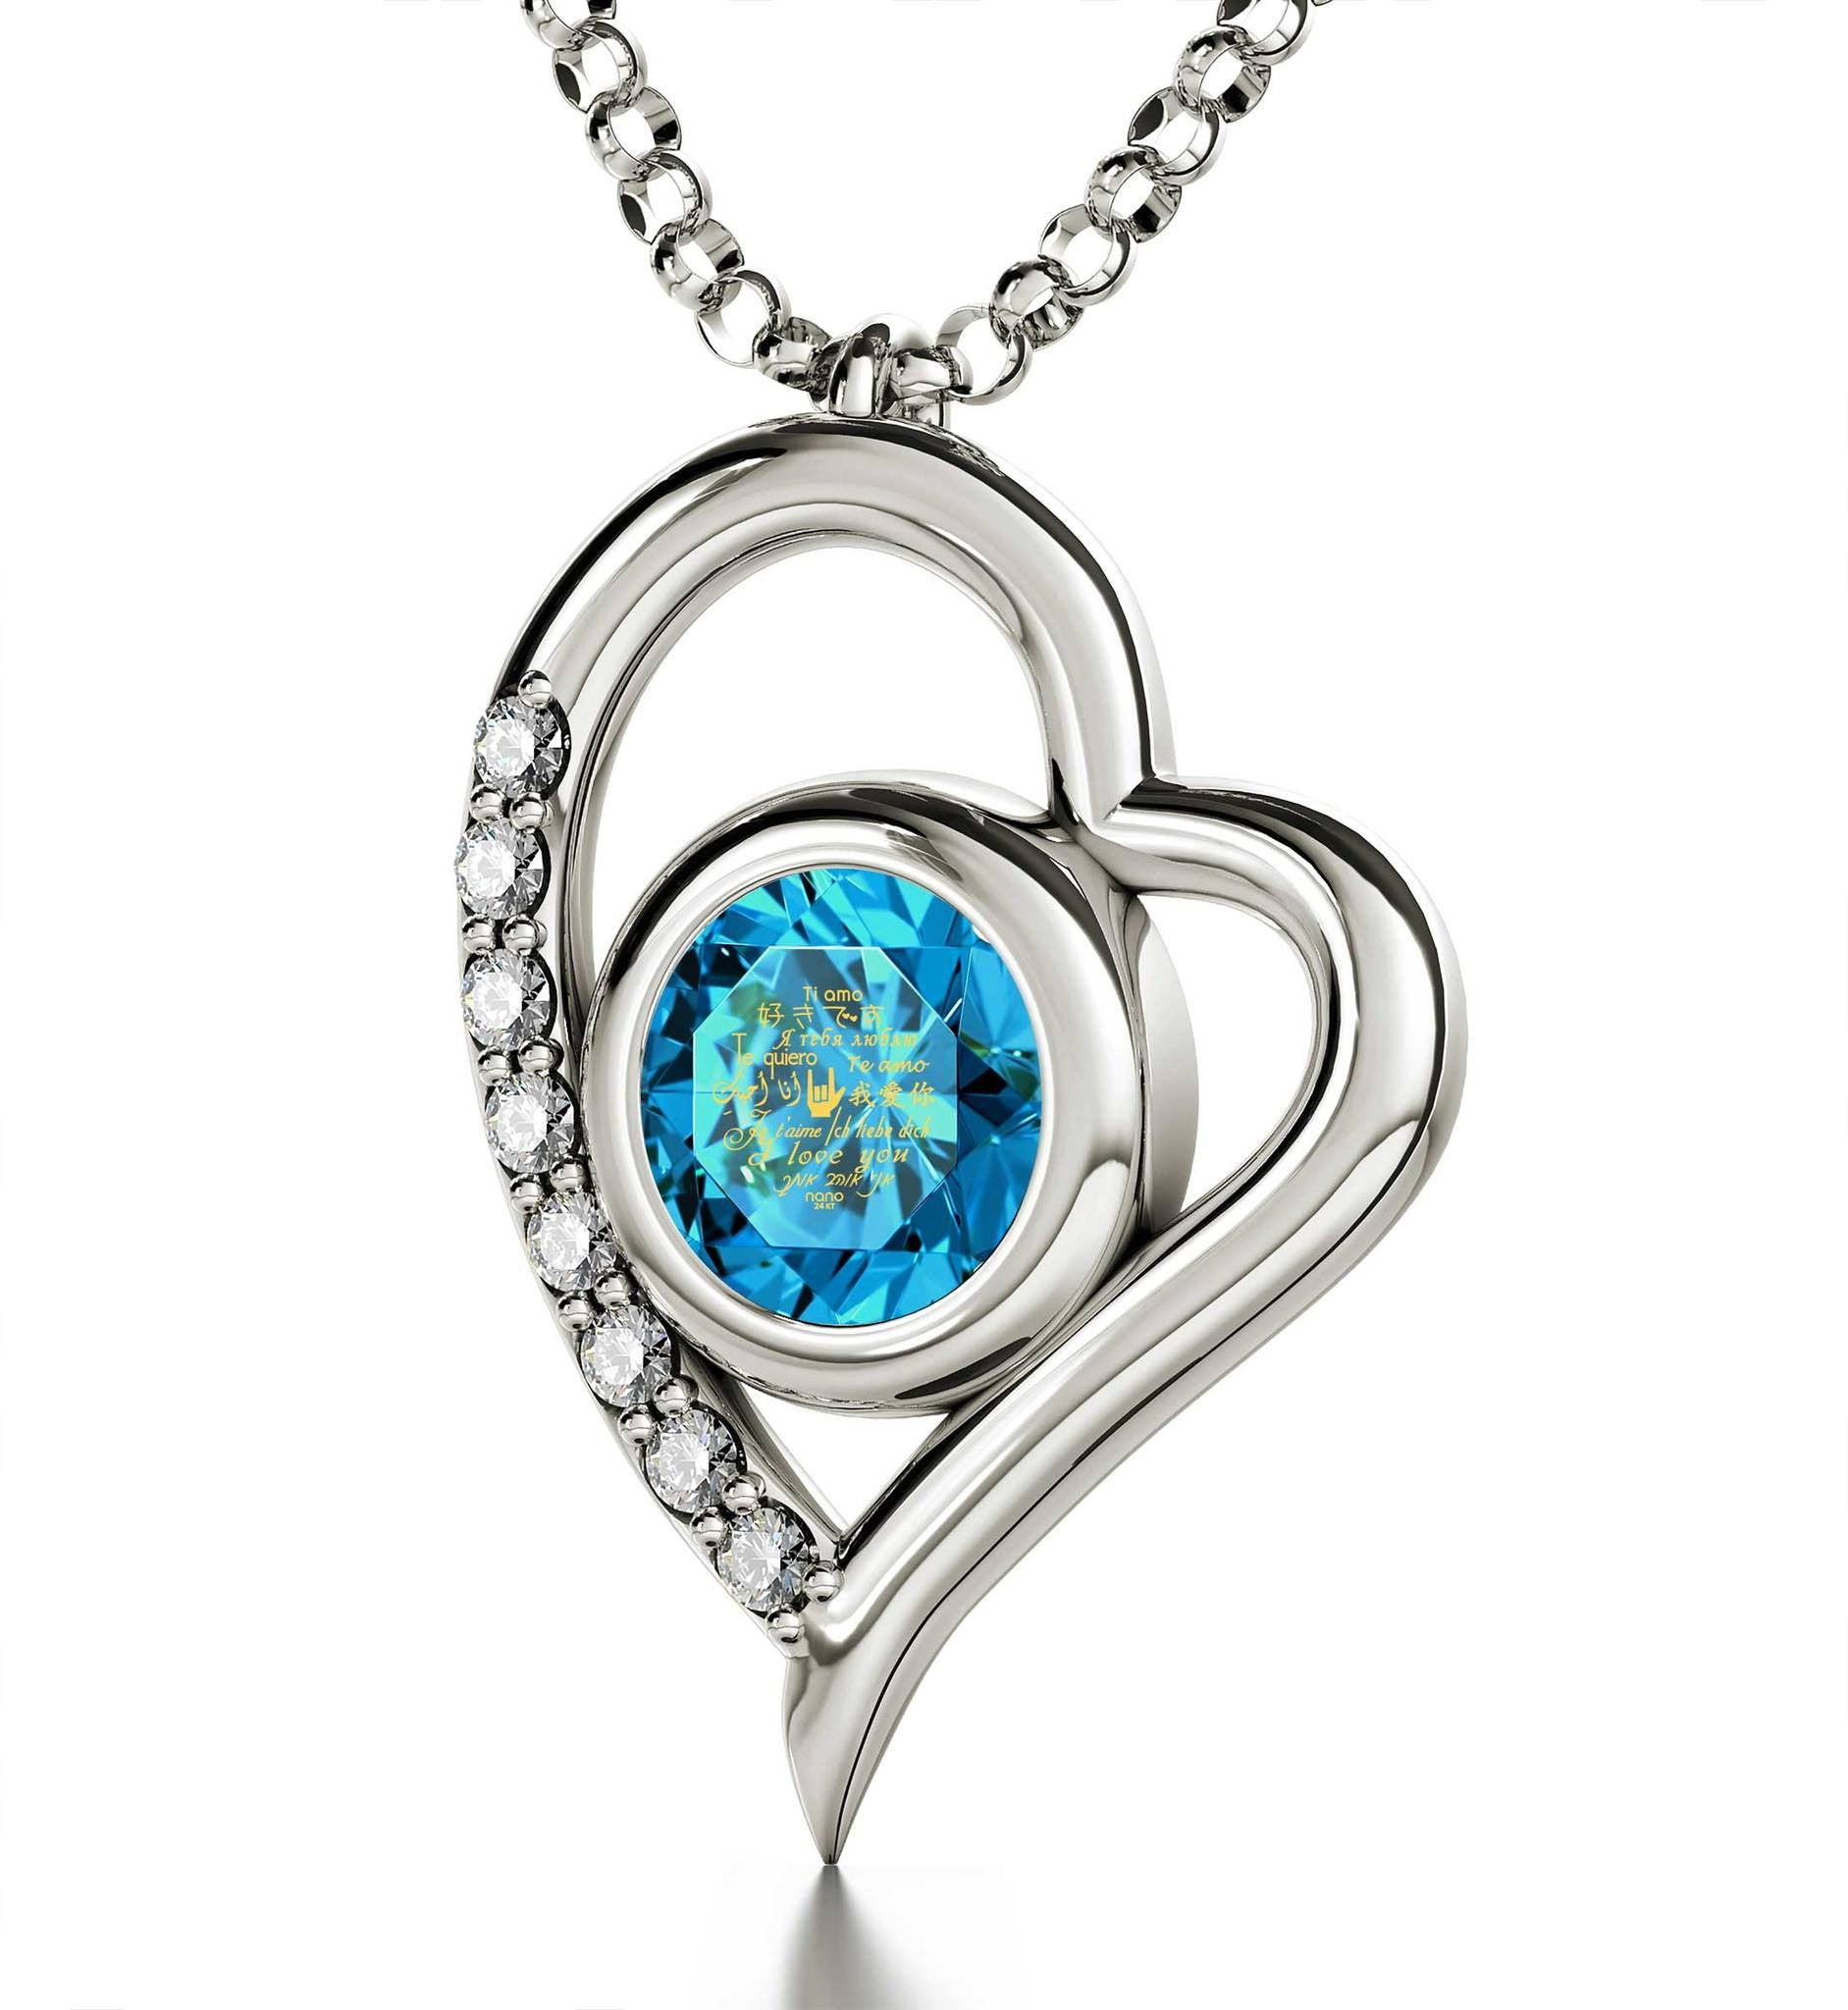 Girlfriend Gifts for Christmas, Heart Necklaces for Women, CZ Aquamarine Stone, Valentines Presents for Her